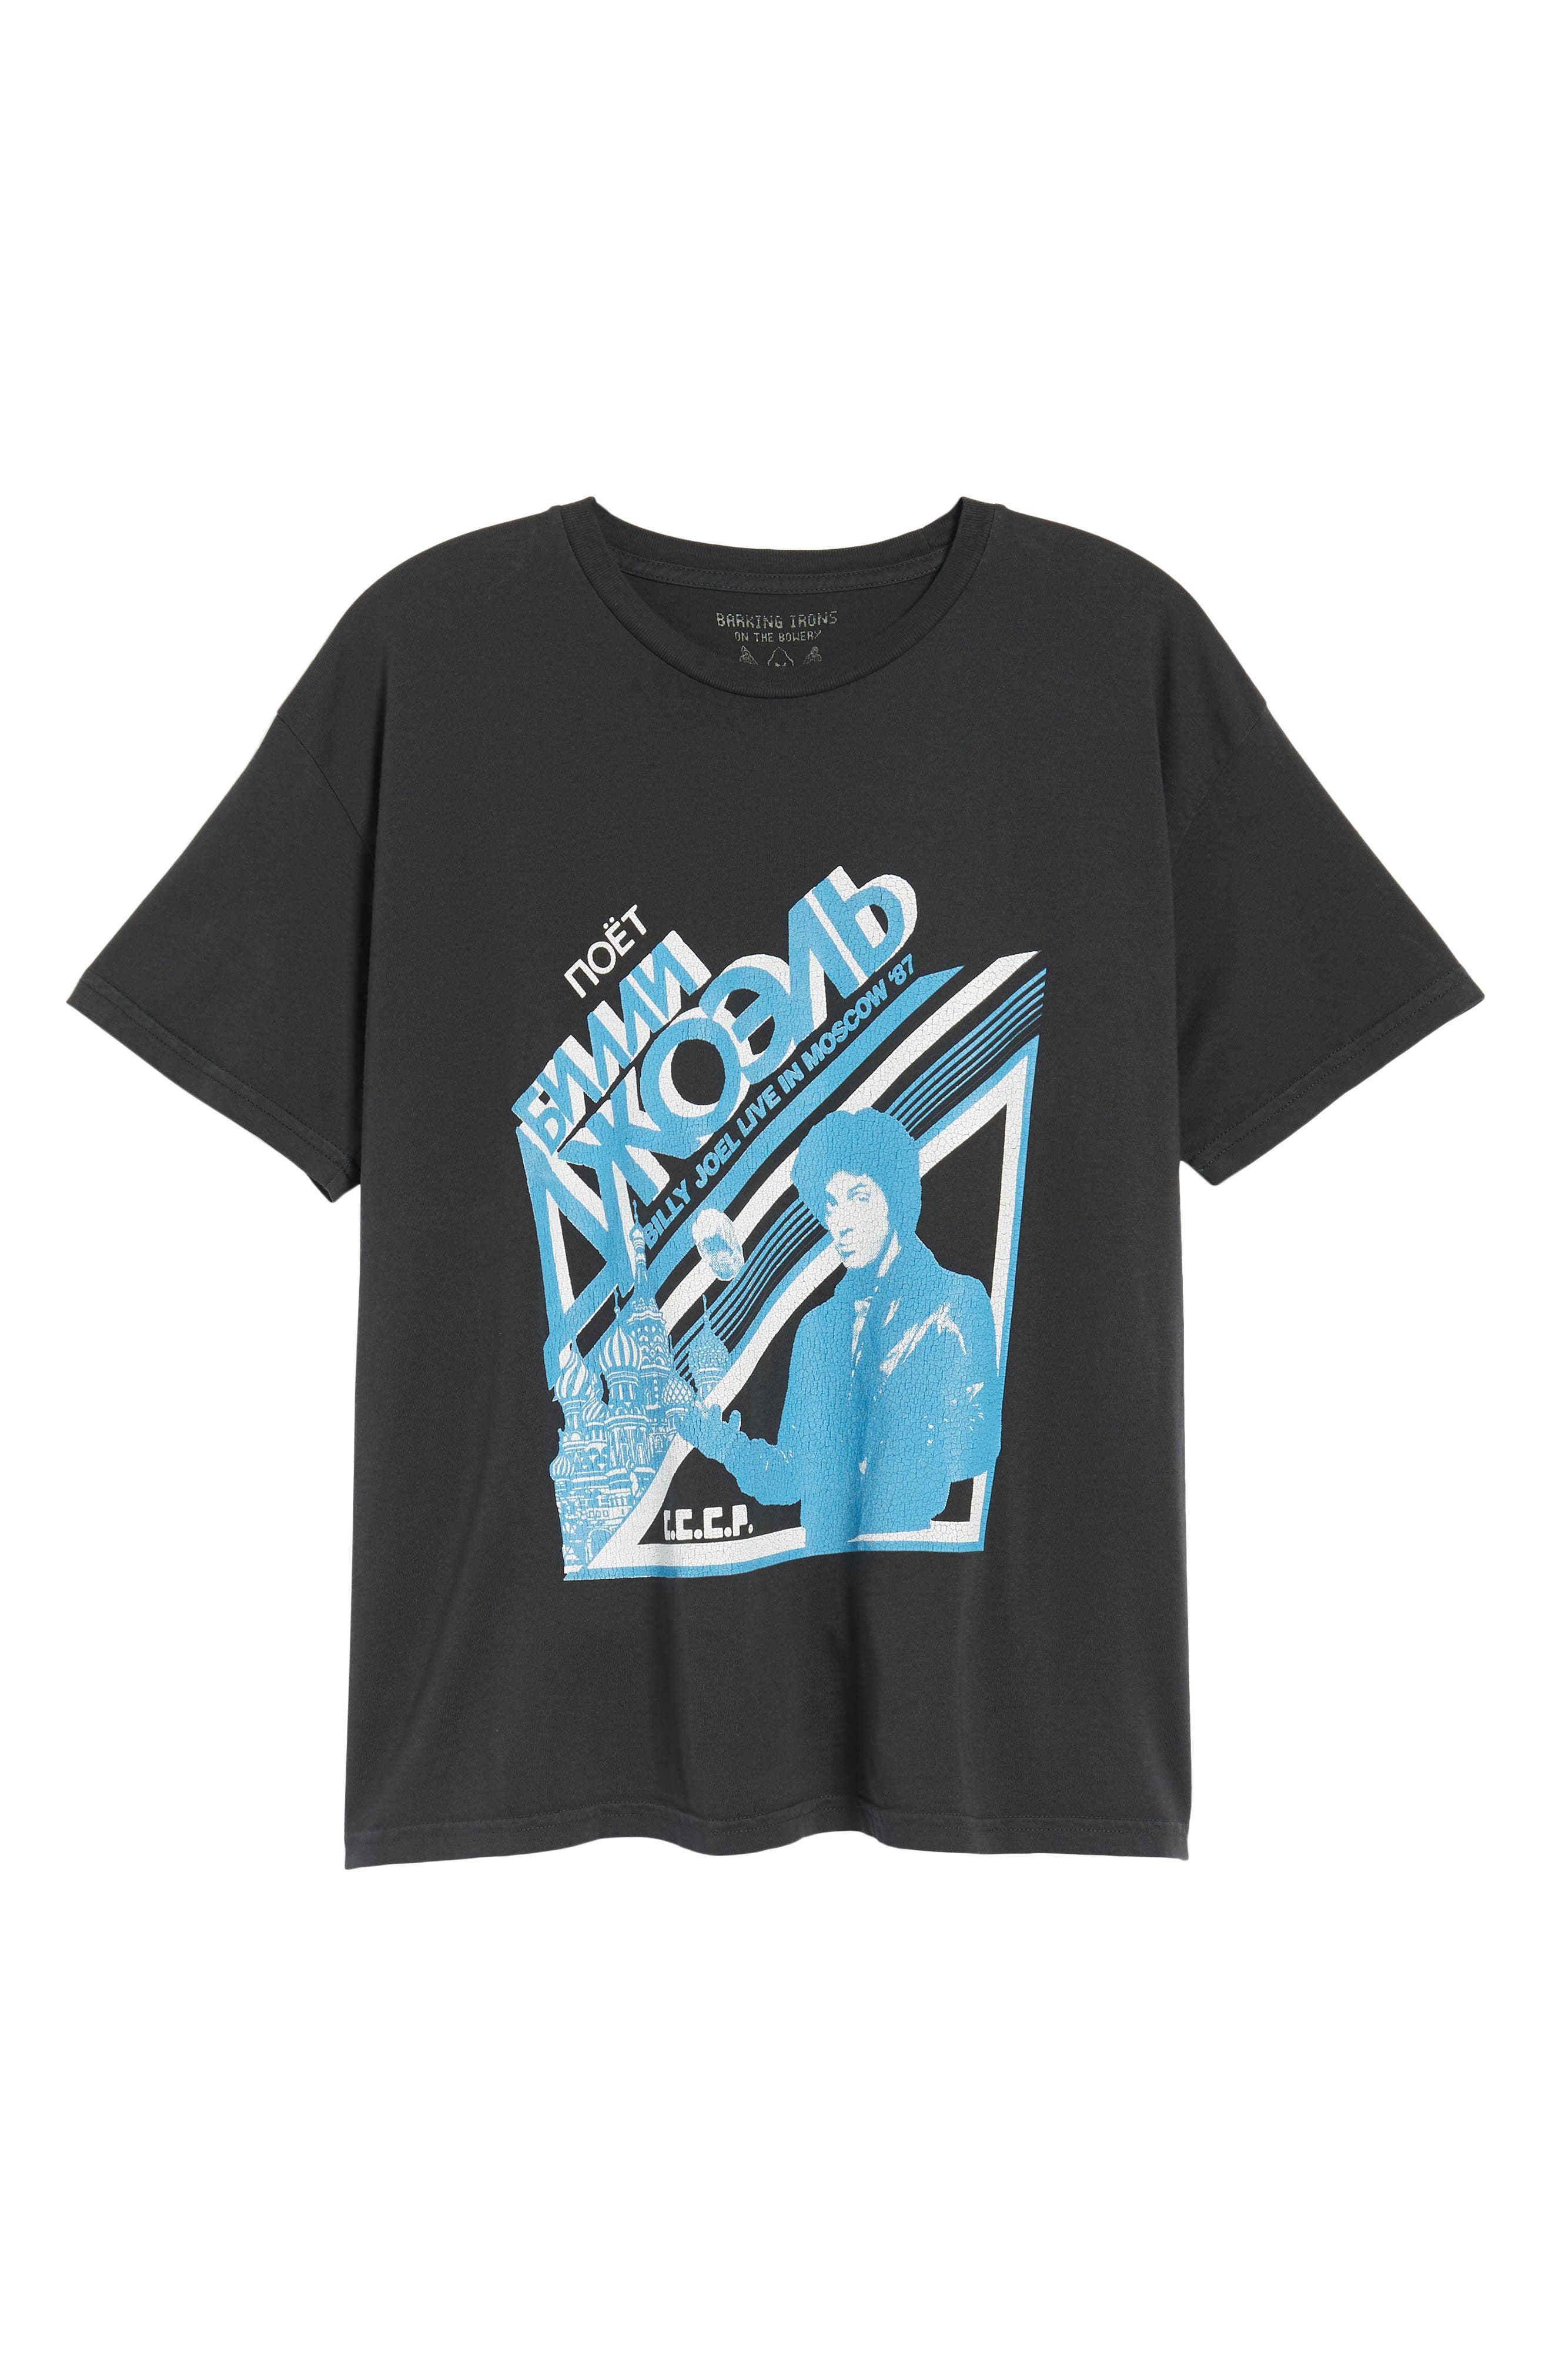 BARKING IRONS,                             Billy Joel Moscow T-Shirt,                             Alternate thumbnail 6, color,                             001